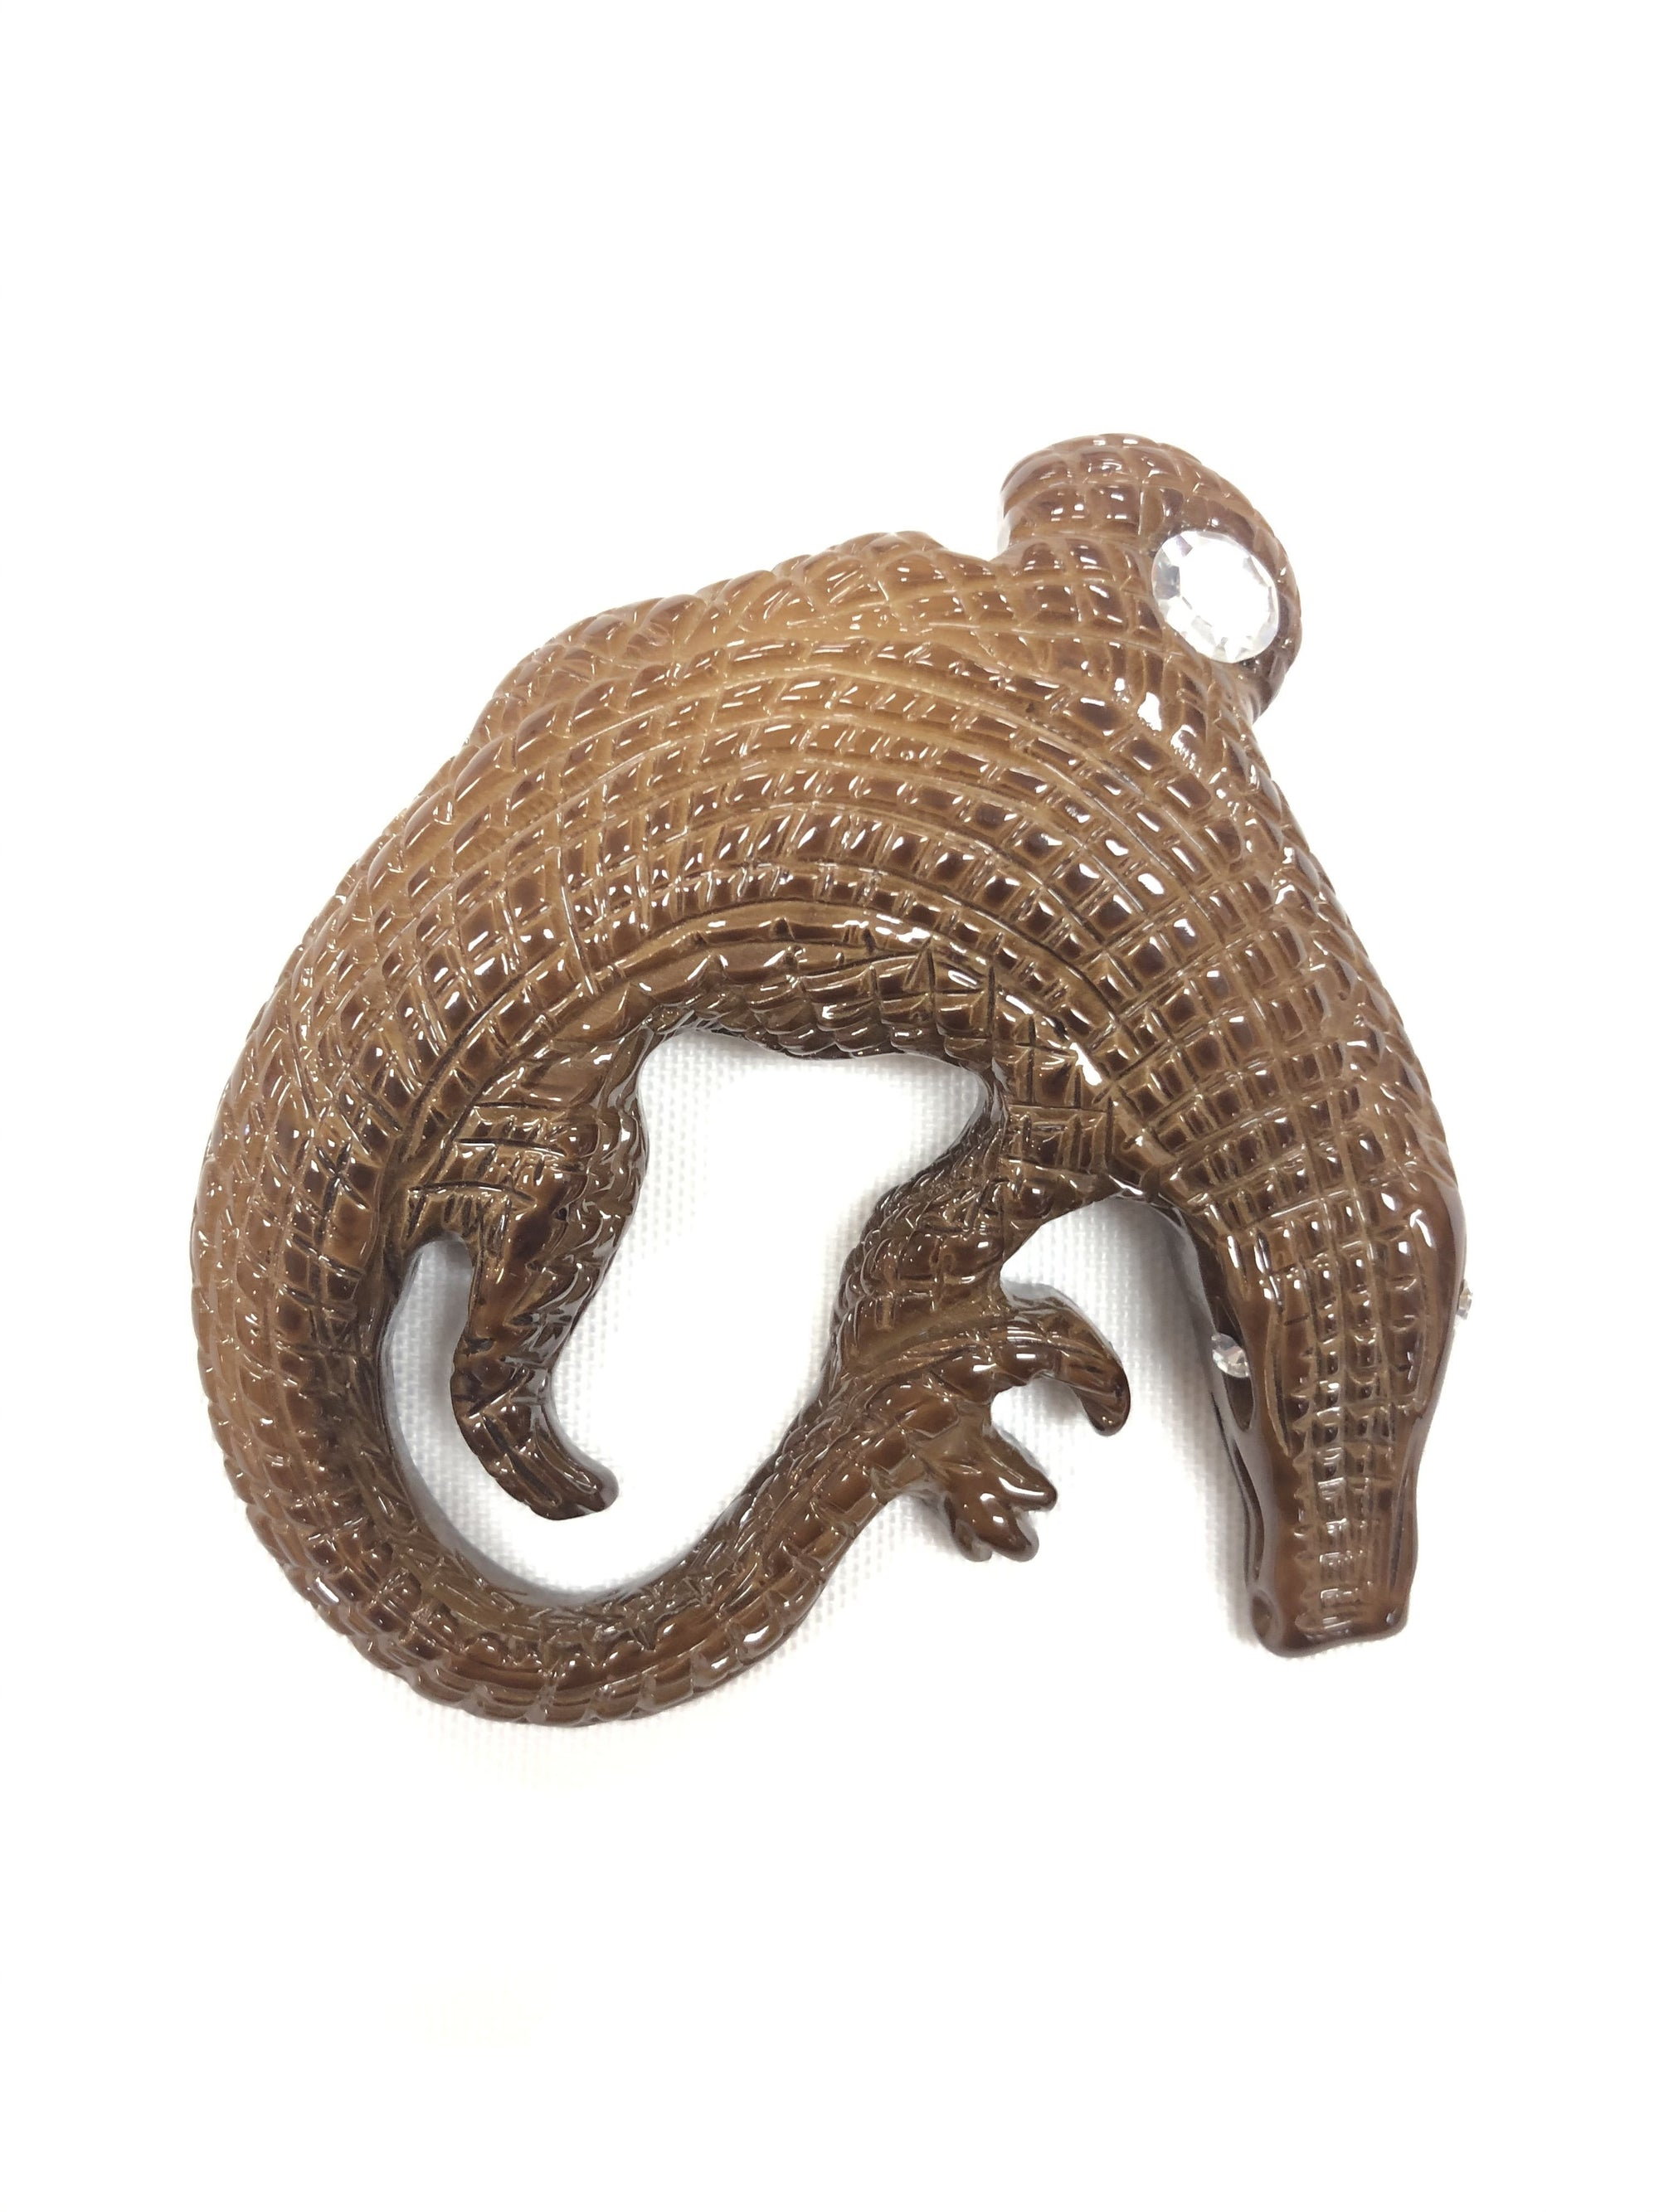 ANGELA CAPUTI BROWN ALLIGATOR BROOCH